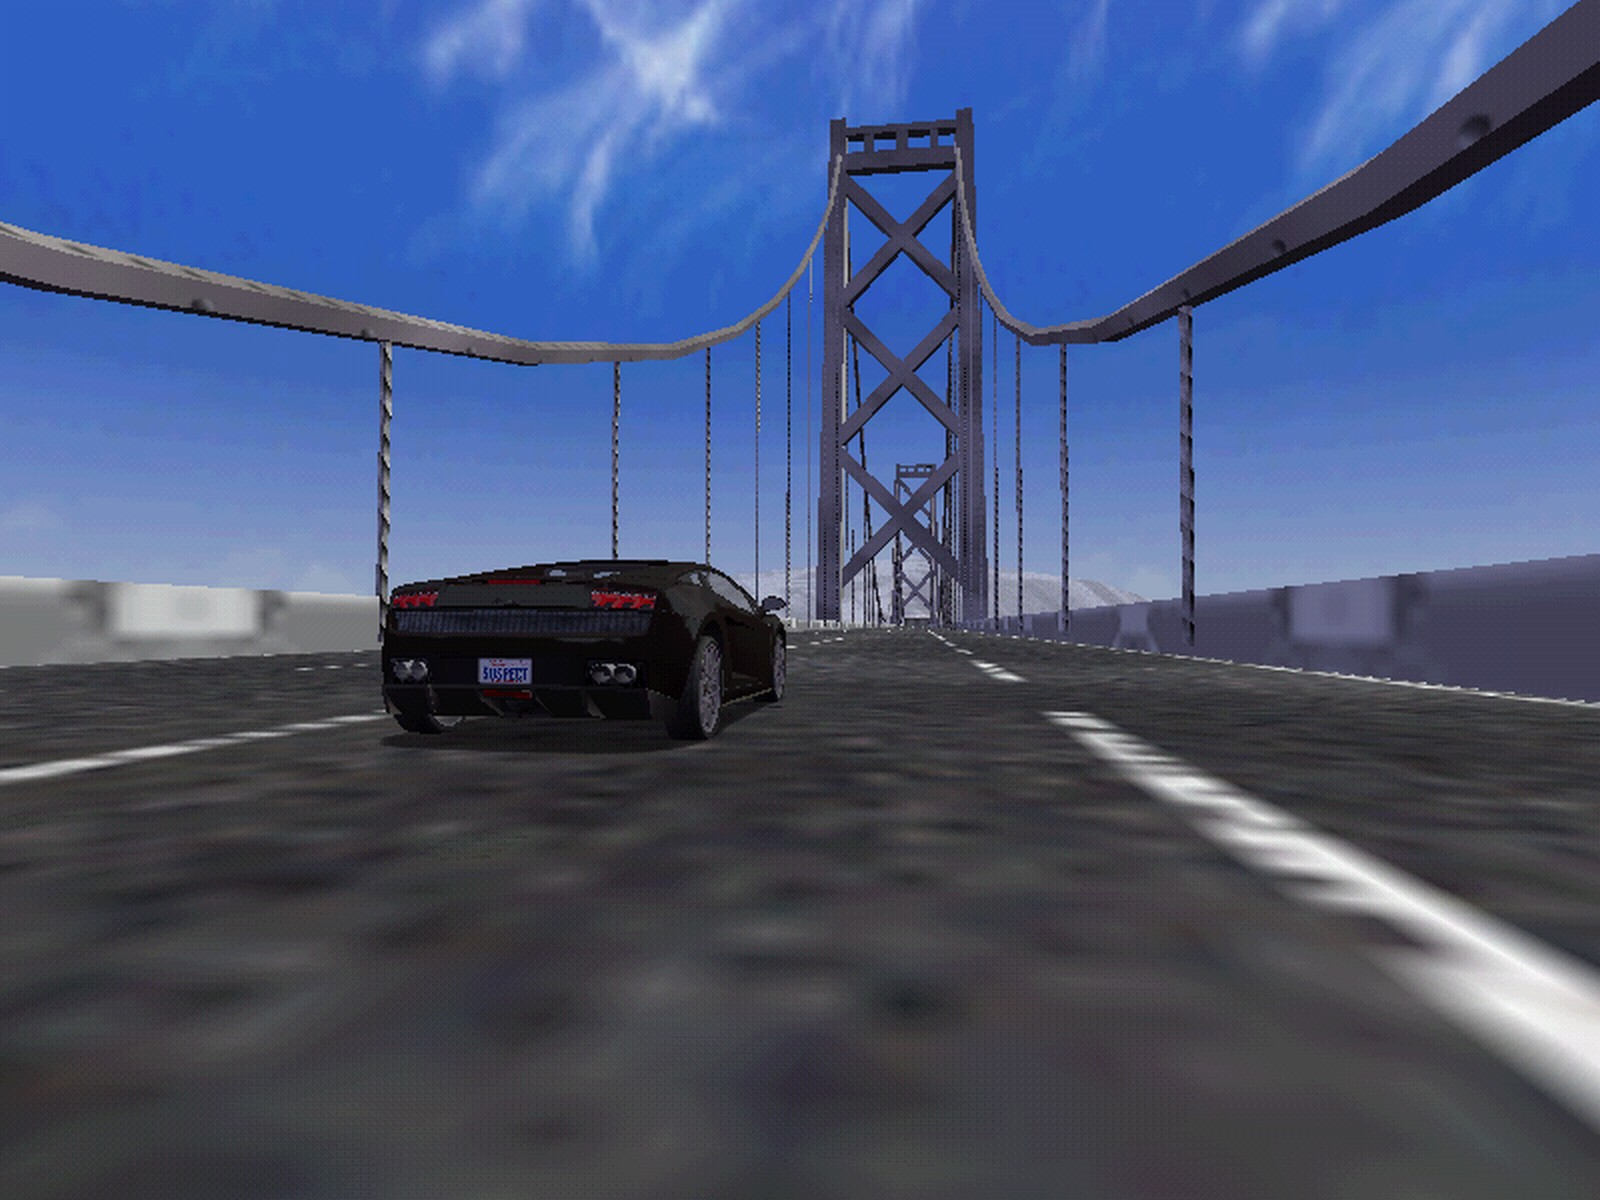 This is Riva's Lamborghini on the bridge of Frisco...